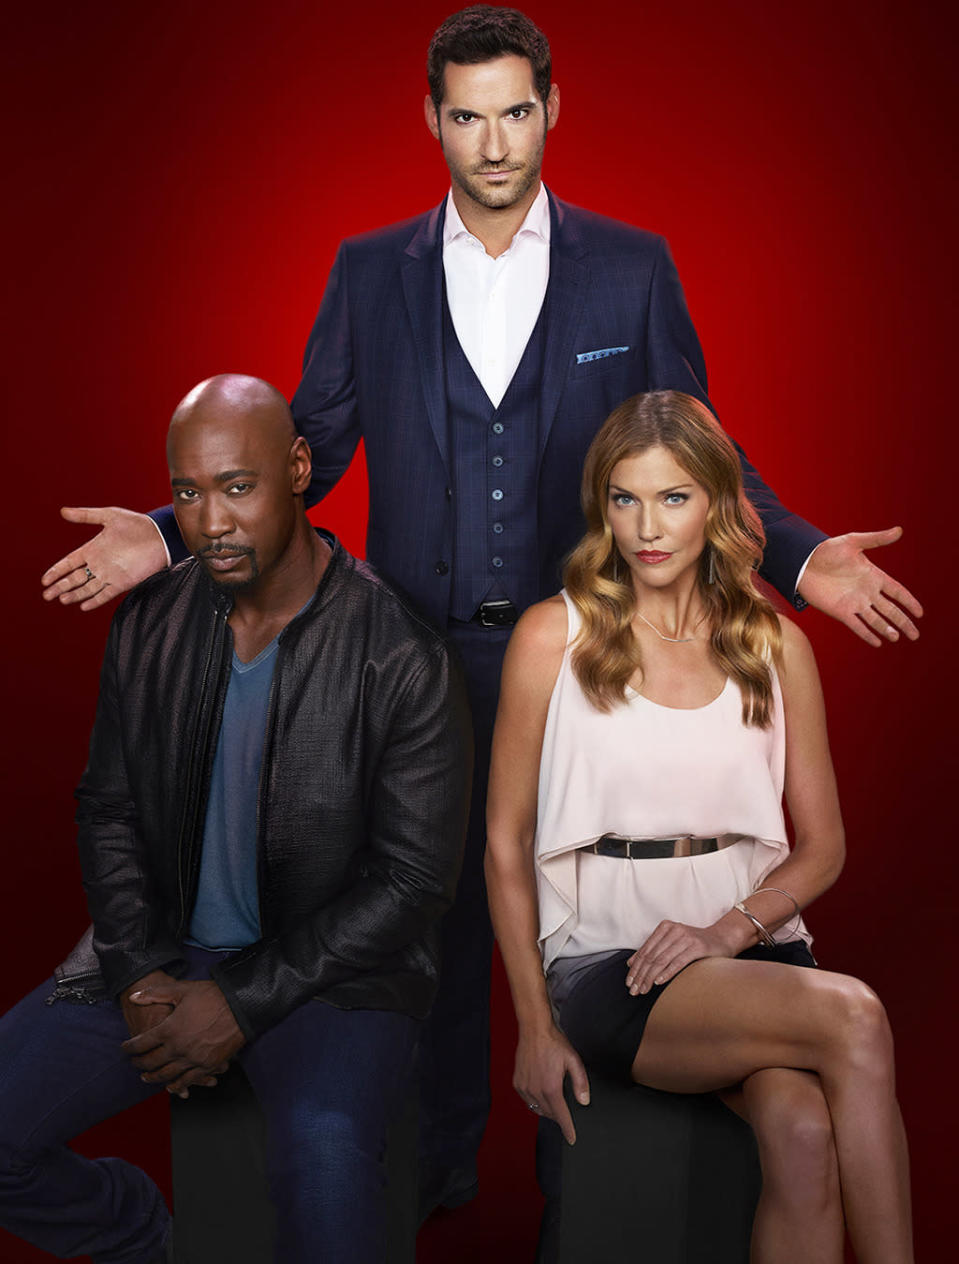 """<p><b>This Season's Theme:</b> """"Season 1 was all about Lucifer's daddy issues and Season 2 is all about dealing with his mom,"""" showrunner Joe Henderson says. """"And as we saw in the finale, he is genuinely terrified.""""<br><br><b>Where We Left Off: </b> Shot by Malcolm, Lucifer (Tom Ellis) promised God/dad he'd do anything if He would save him so that he in turn could save Chloe (his partner in crime-fighting/love interest) and her daughter Trixie. So God asked, and the ask was huge – find, capture, and return a hell escapee who just so happens to be the mother of the devil and Amenadiel, whose life was saved by his demon lover Mazikeen. <br><br><b>Coming Up: </b> So much conflict, starting with Lucifer and his mom. """"The subtext is that mom is coming after him to punish her son as he was her warden in hell, but you will come to realize that his assumptions aren't necessarily true,"""" Henderson says. Tricia Helfer (Battlestar Galactica), who is playing mommy dearest, adds, """"They have a lot of unresolved issues and quite a history of miscommunication so there's definite reason for his concern. Mom has an agenda."""" And there's Chloe, who witnessed """"Lucifer seemingly do the impossible once again."""" Henderson continues, """"She's a good cop who saw a man get shot in the stomach and be fine about two minutes later. She will look into that."""" <br><br><b>Strip Tease: </b> Henderson promises that one of the case-of-the-week episodes will double your viewing pleasure. """"Dan [Kevin Alejandro] and Lucifer go shirtless together. You're welcome, America,"""" he says. """"What happened was Kevin came in to start shooting completely ripped, so I went back to the writers room and said, 'We need to get him shirtless ASAP.' Someone else suggested we make them both go undercover on a case that required taking their clothes off. That scene is a gift that keeps on giving."""" <i> – Carrie Bell</i> <br><br>(Credit: Michael Courtney/Fox)</p>"""